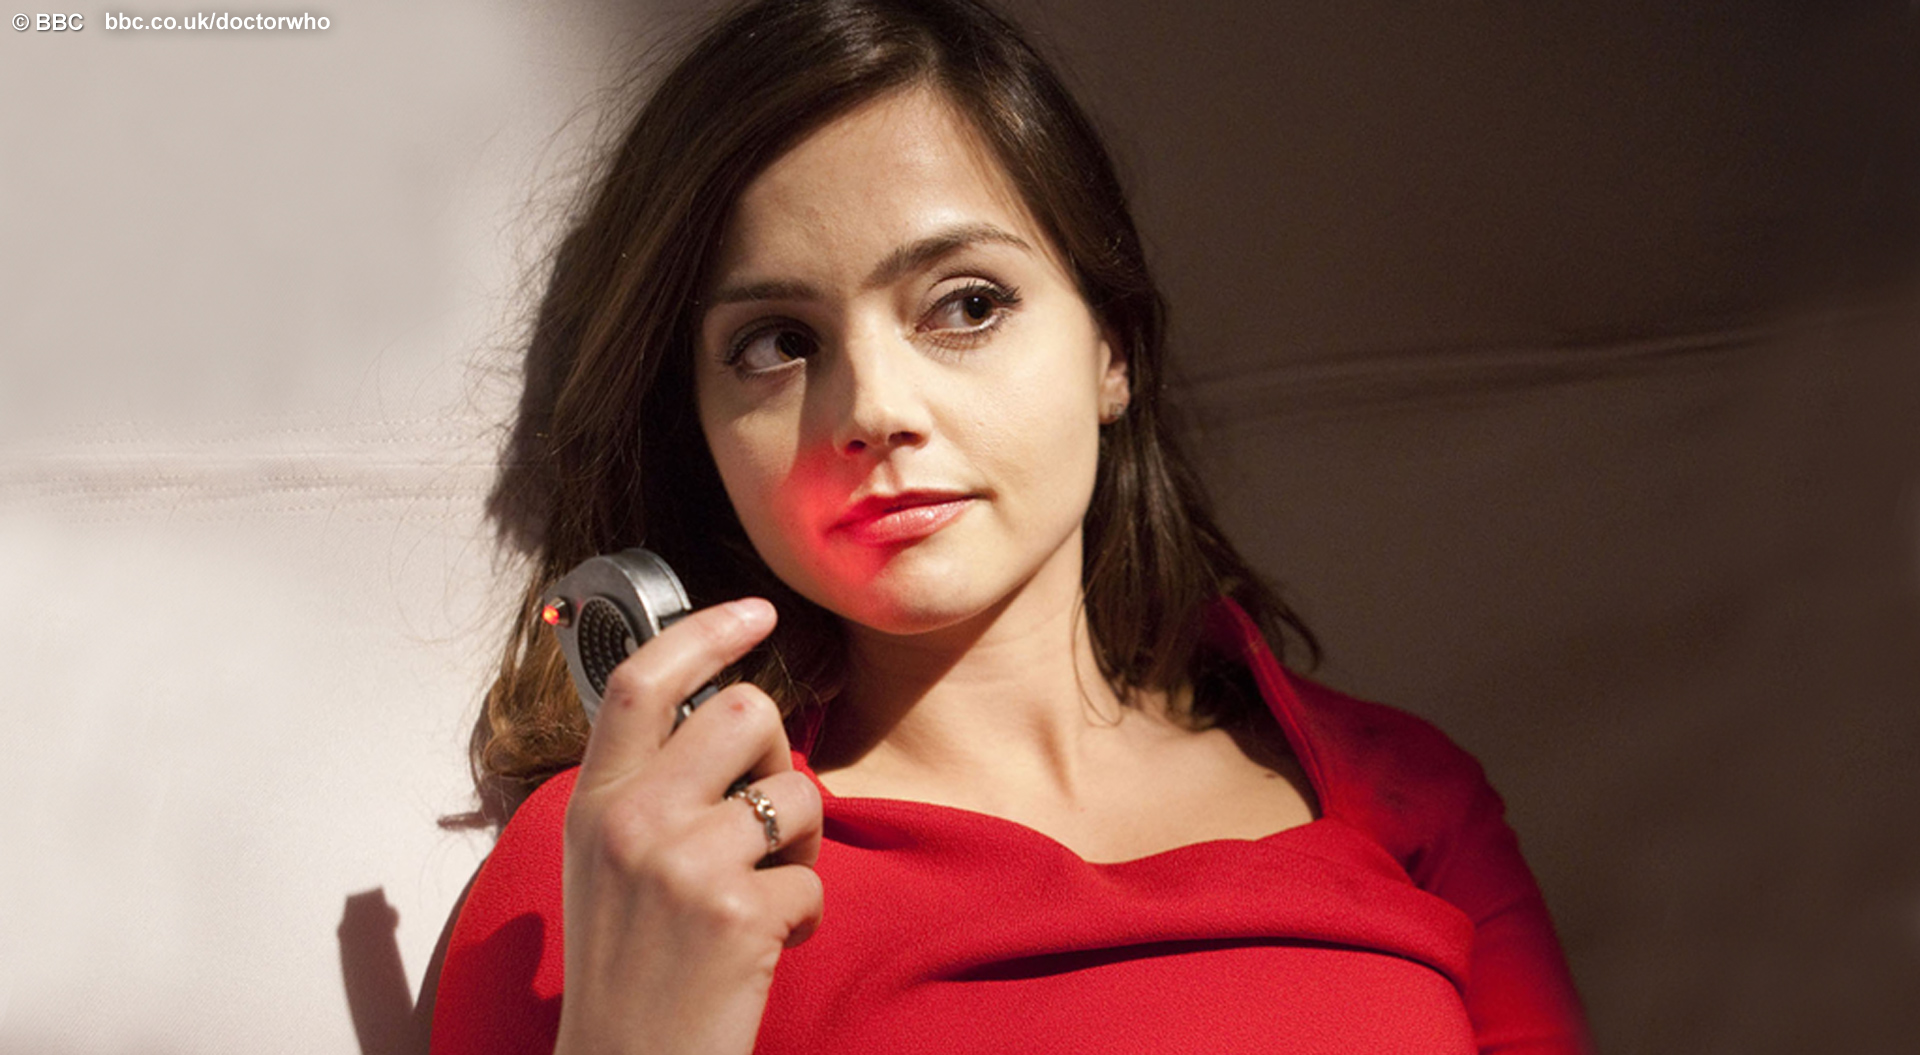 1920x1055 - Jenna-Louise Coleman Wallpapers 34